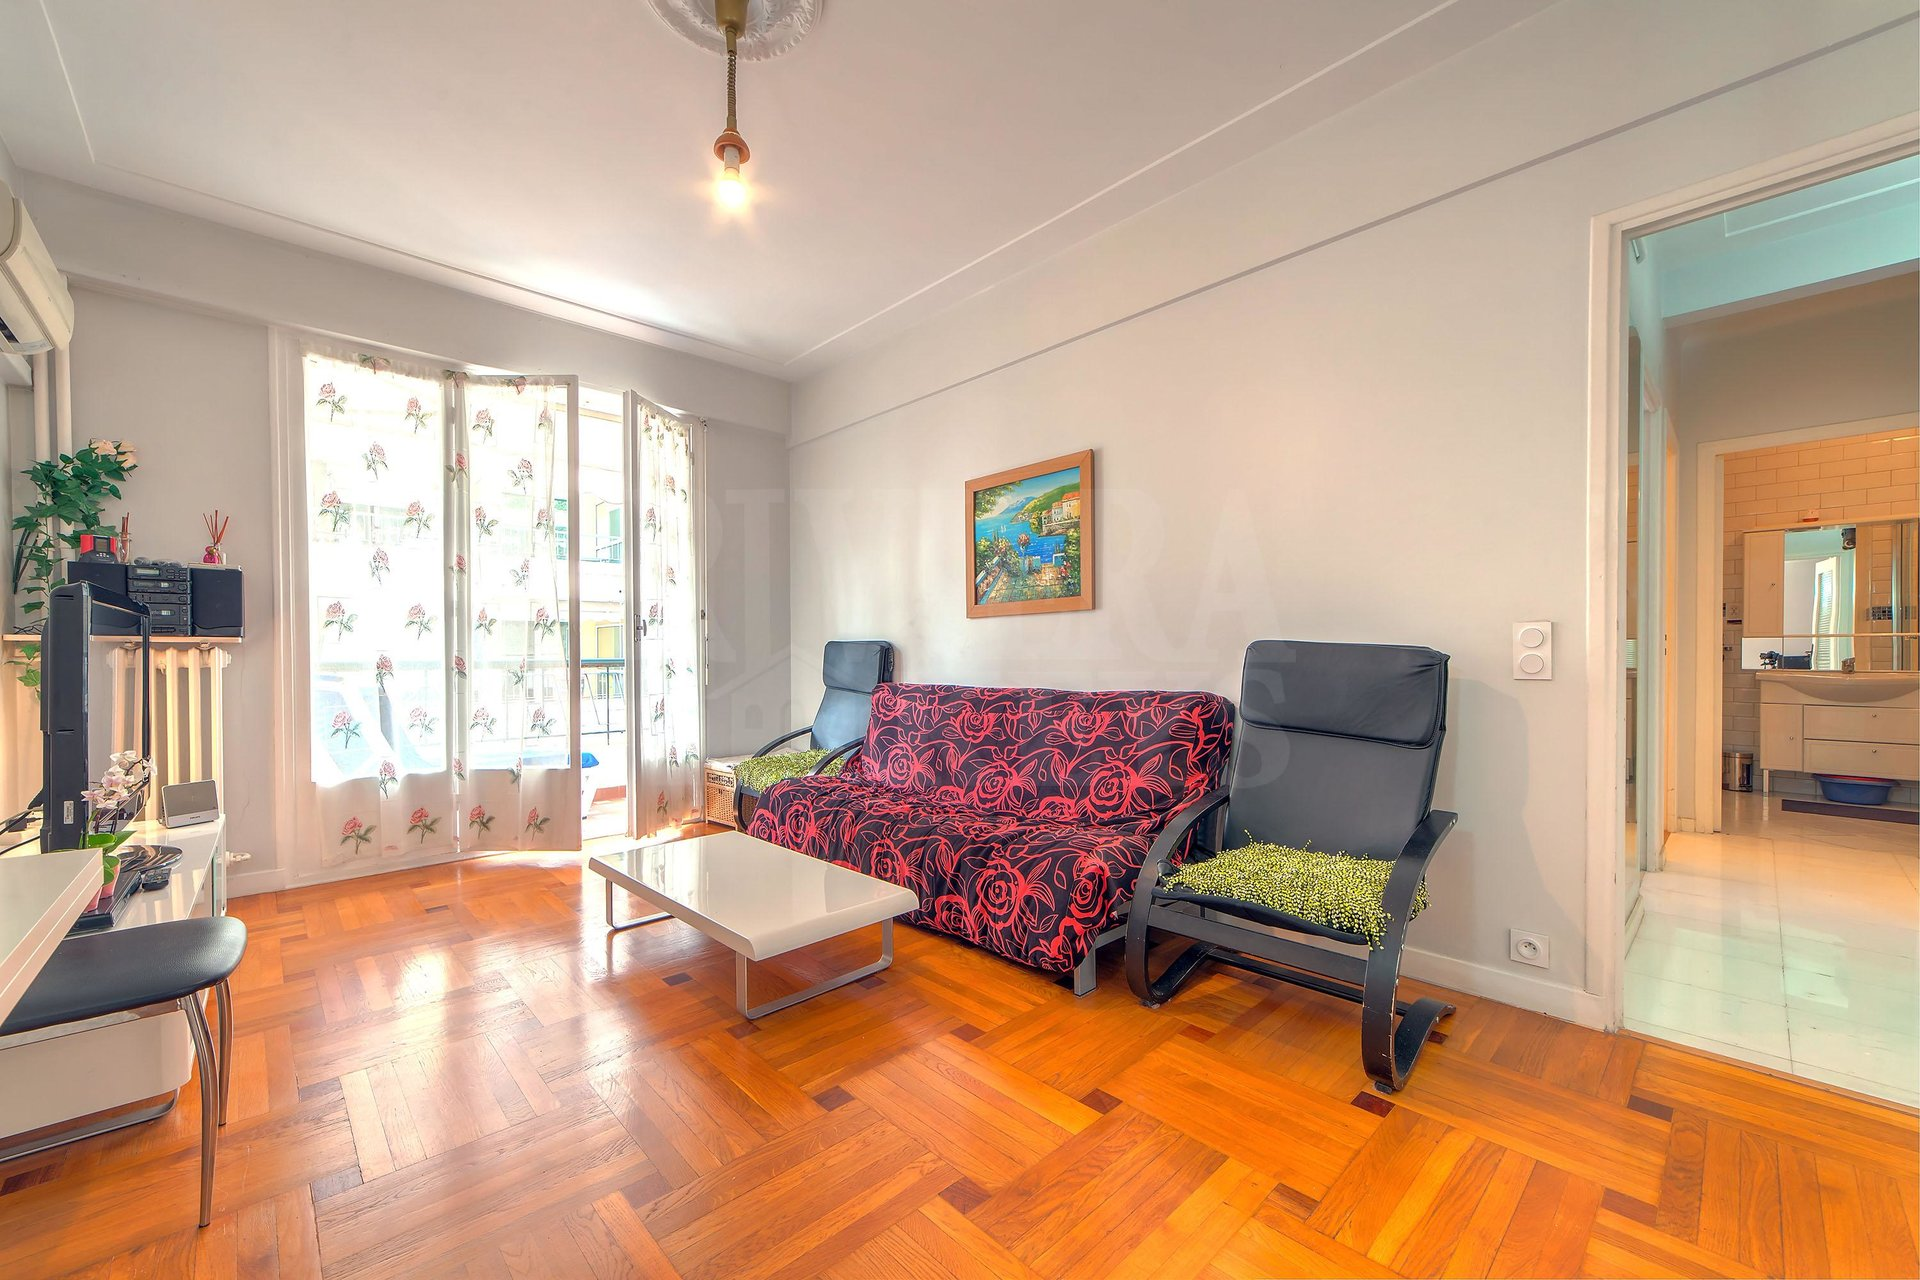 One-bedroom apartment, terrace, in the Fleurs area in Nice.